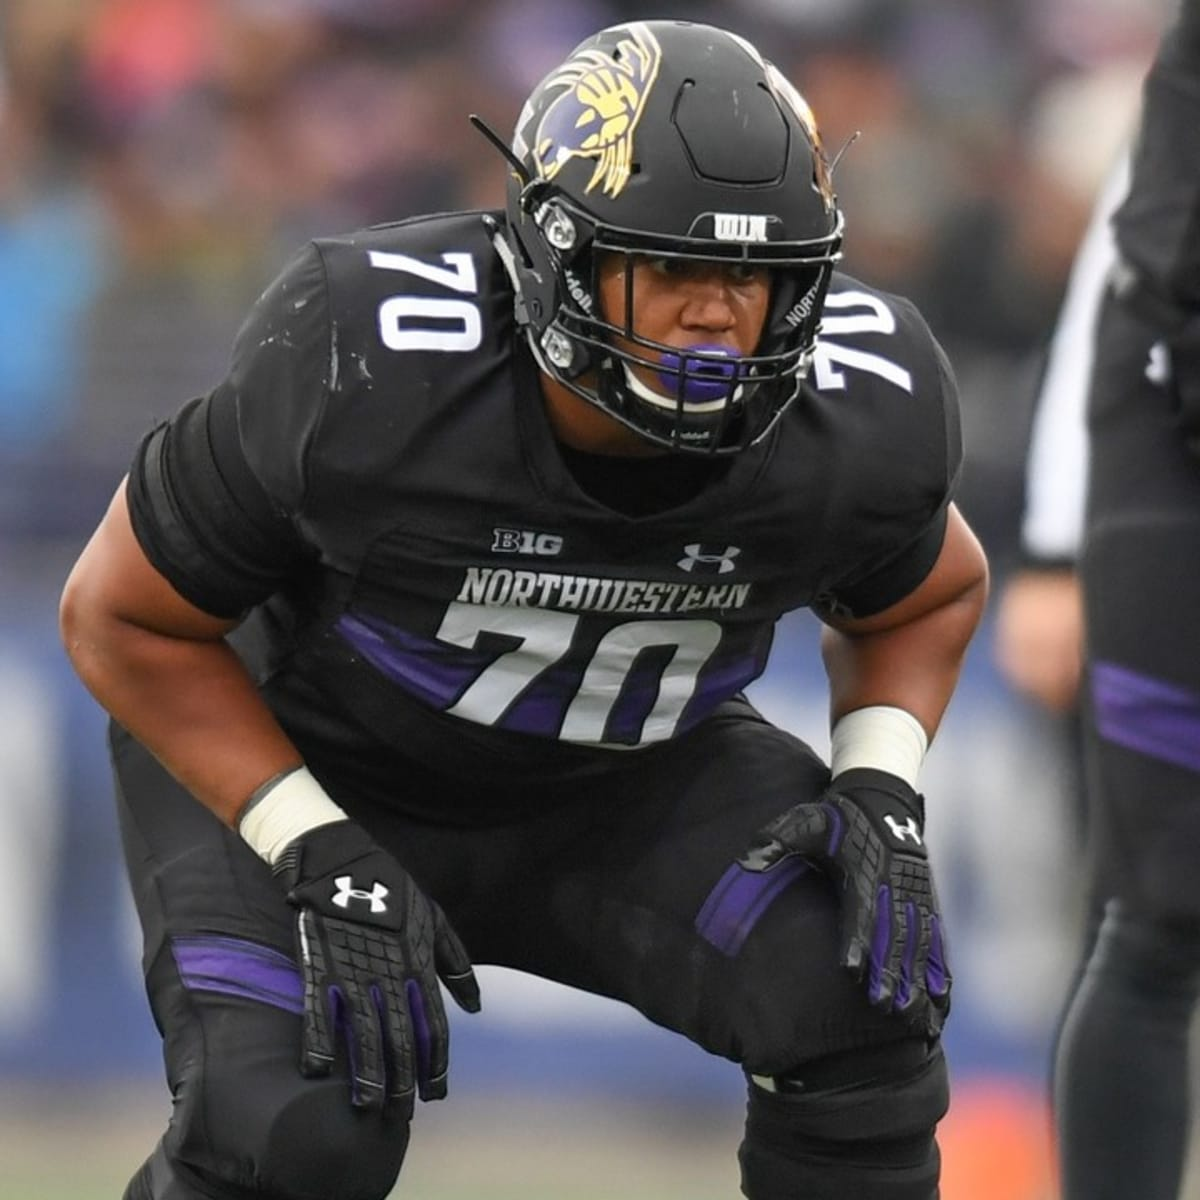 Rashawn Slater 2021 NFL Draft Option Detroit Lions - Sports Illustrated Detroit Lions News, Analysis and More